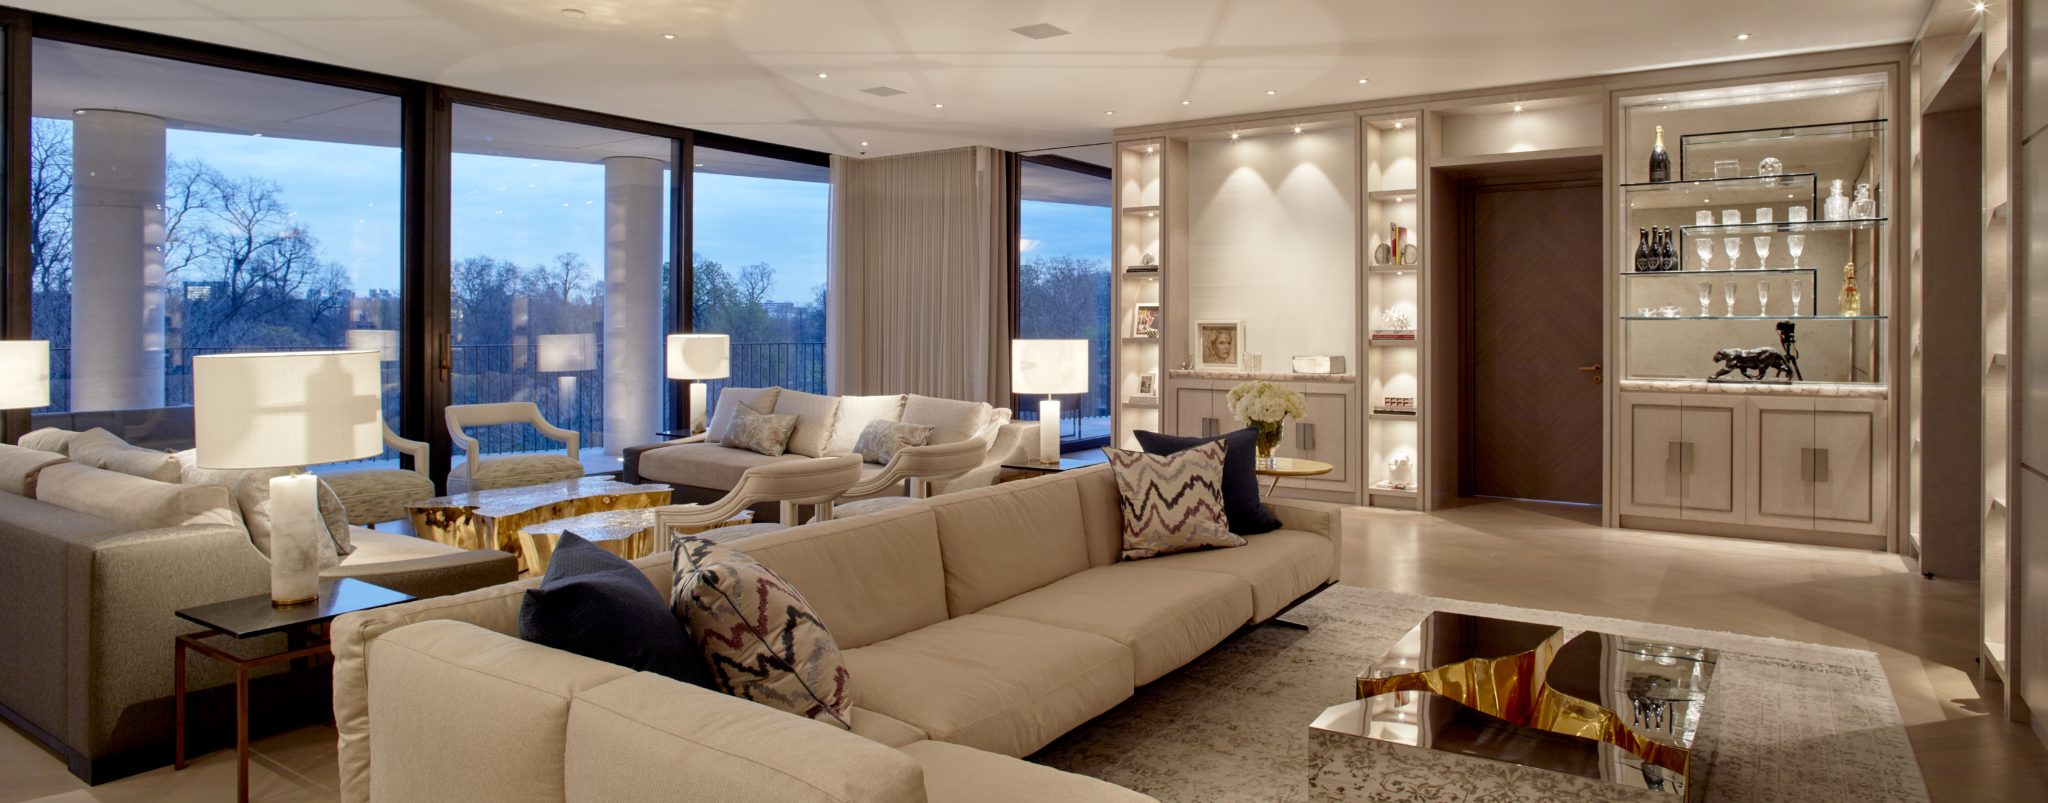 Kensington - luxury apartment by Rigby & Rigby